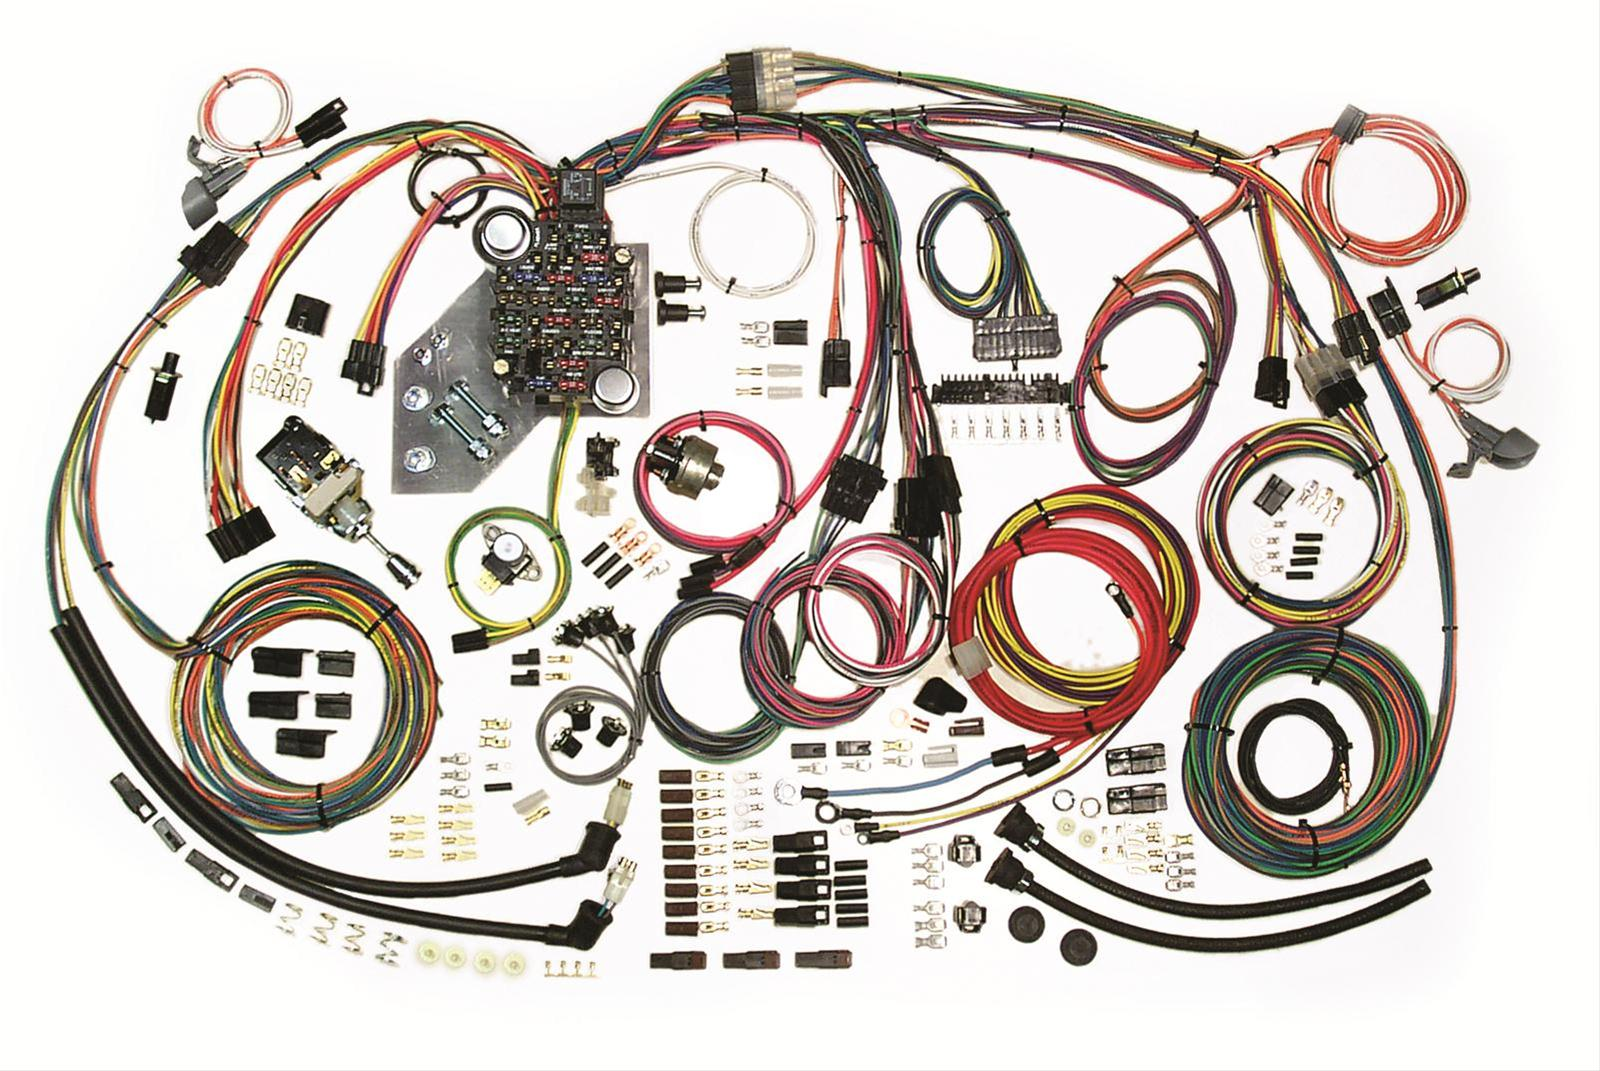 american autowire classic update series wiring harness kits 500467 1953 cadillac american autowire classic update series wiring harness kits 500467 free shipping on orders over $99 at summit racing